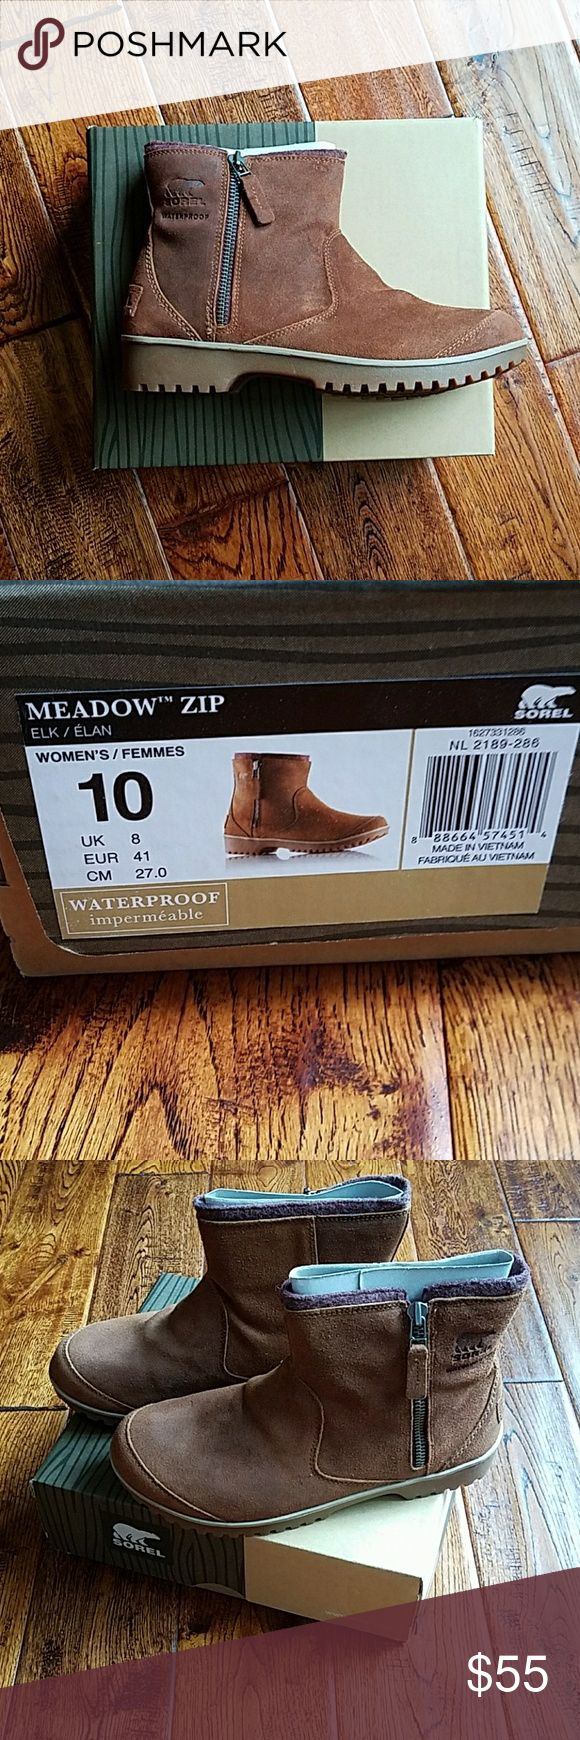 New in box Sorel meadow zip boots Winter sale in summer! Great pair of timeless boots Sorel Shoes